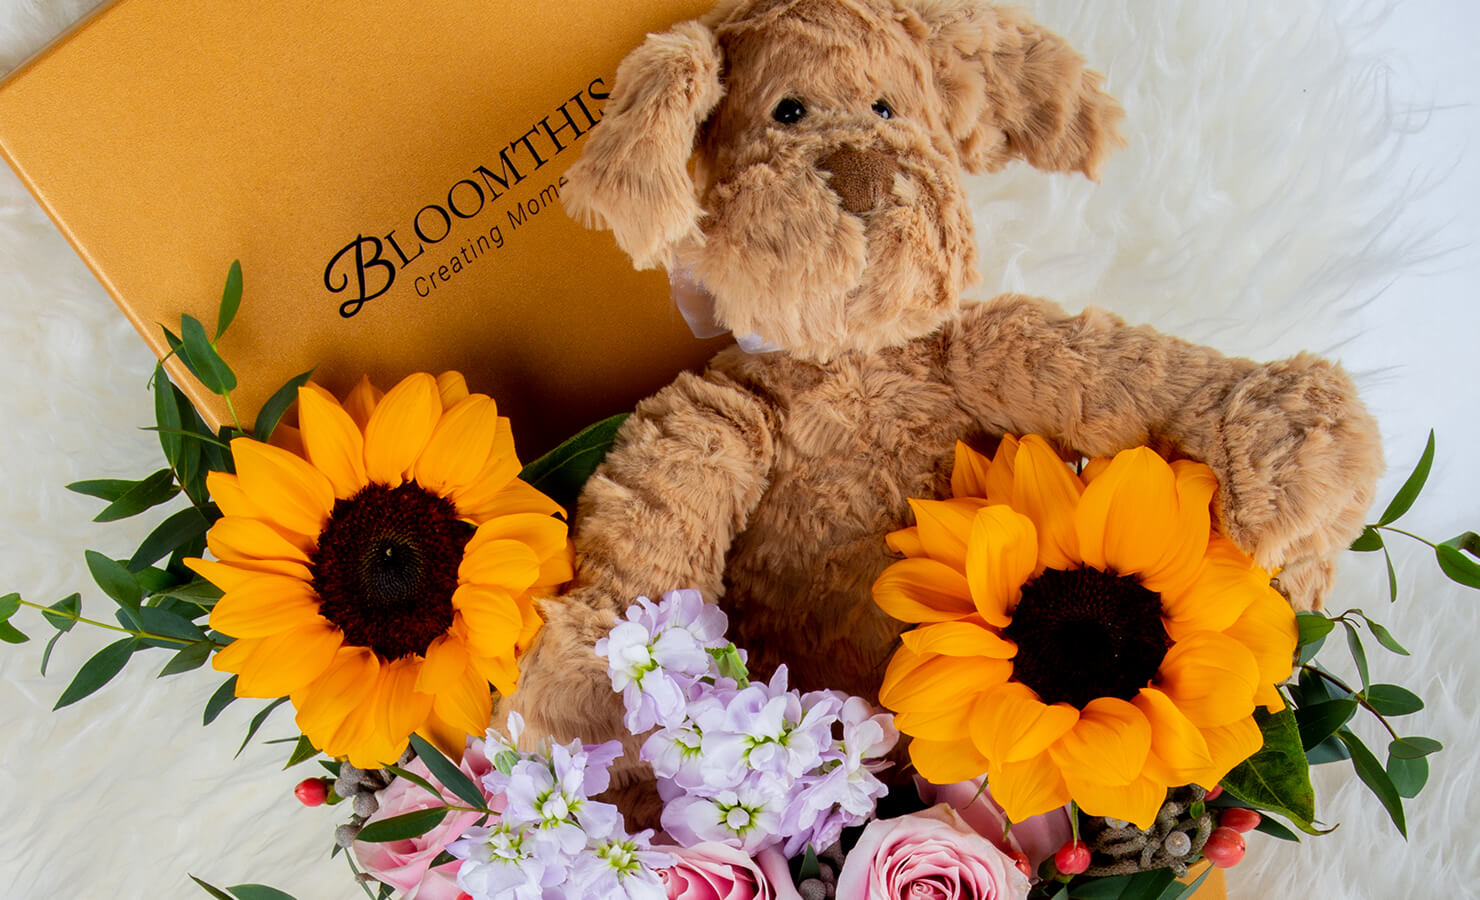 bloomthis-sunflower-products-goldilocks